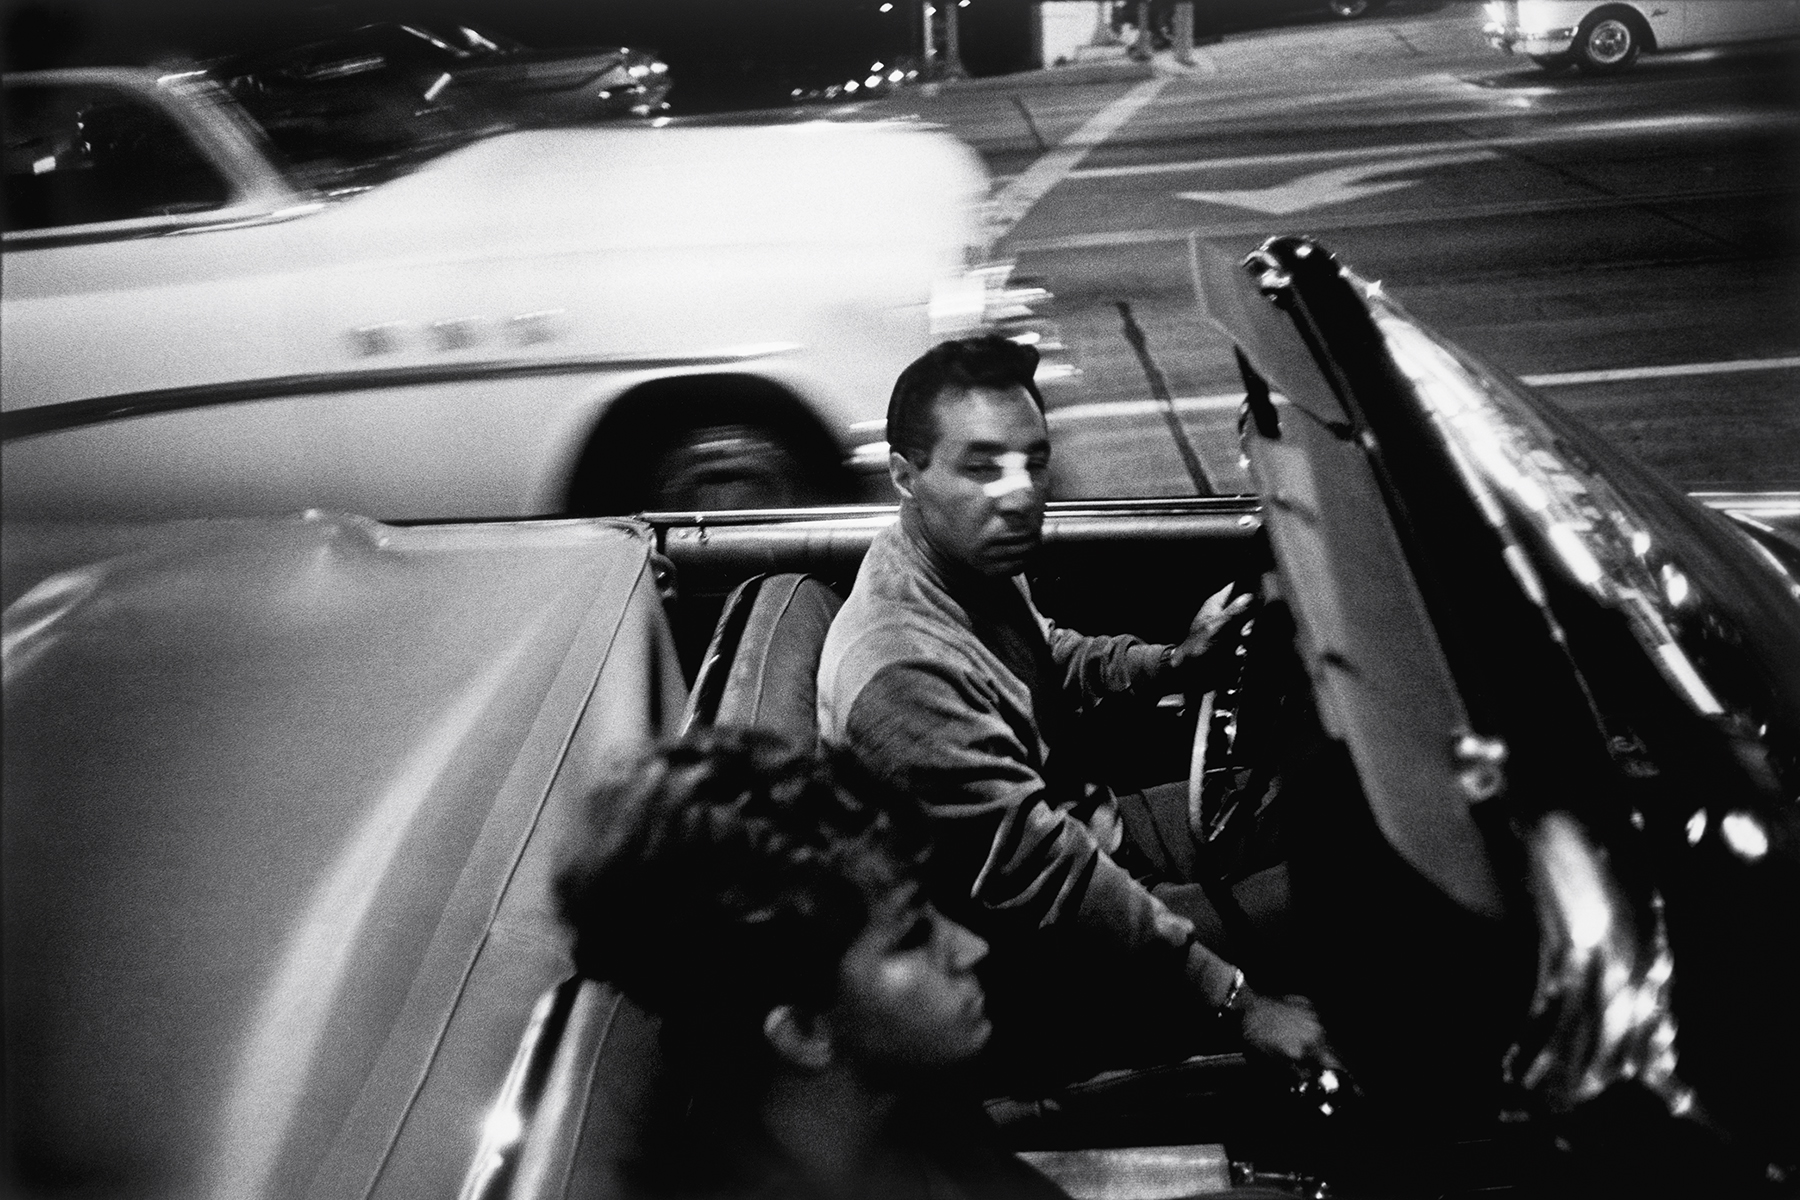 Garry Winogrand: All Things Are Photographable - Read more